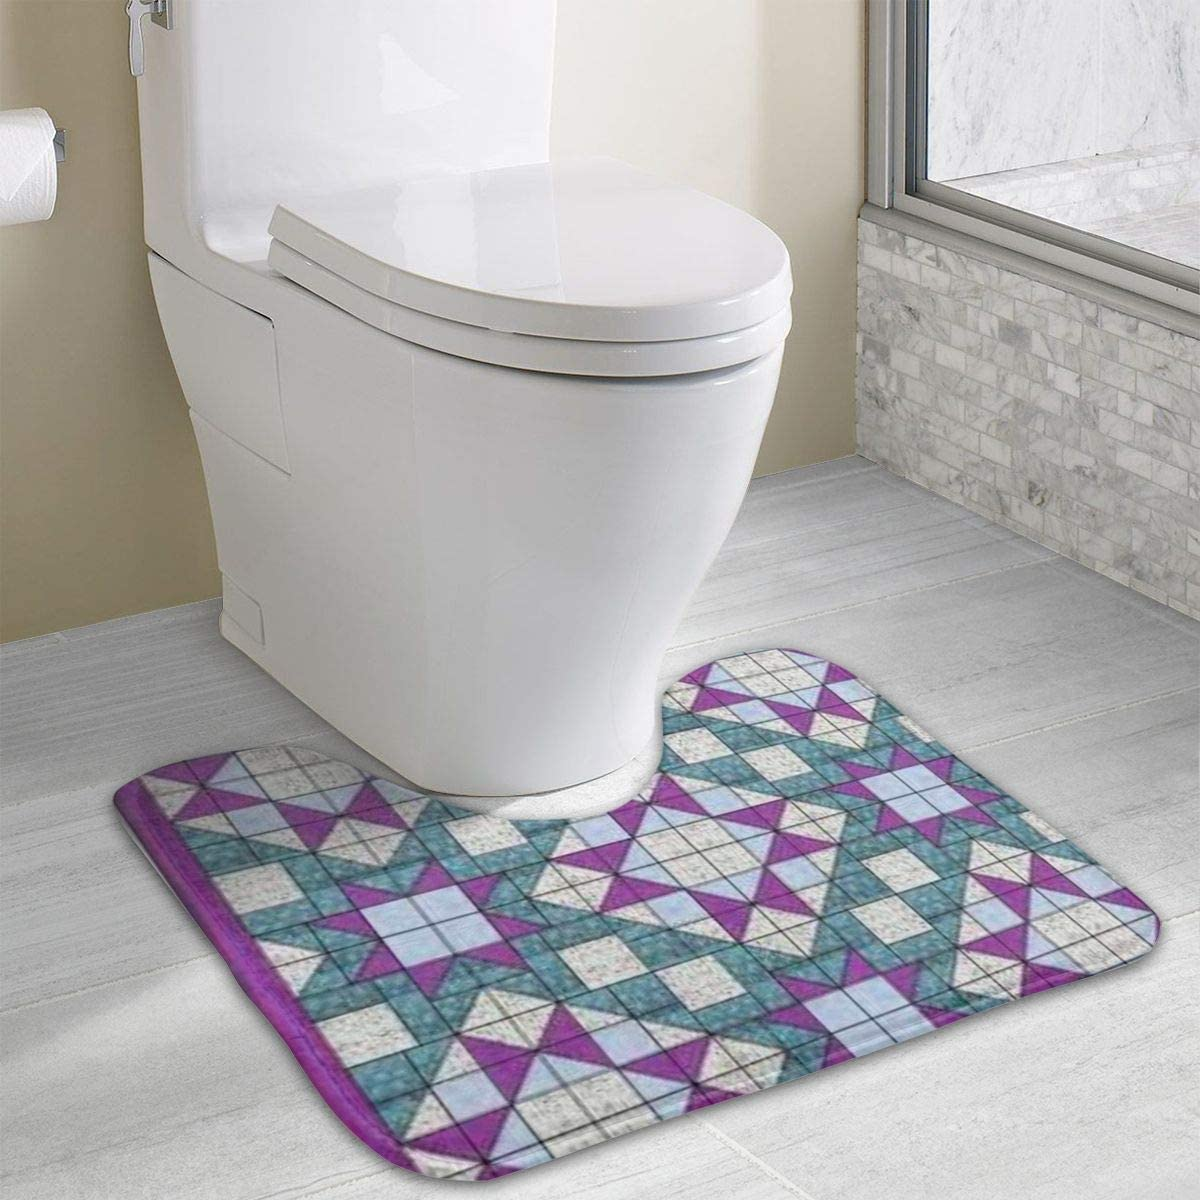 Purple Square Non-Slip Bath Mats for Floors U-Shaped Toilet Mat Incredibly Soft and Absorbent Rug